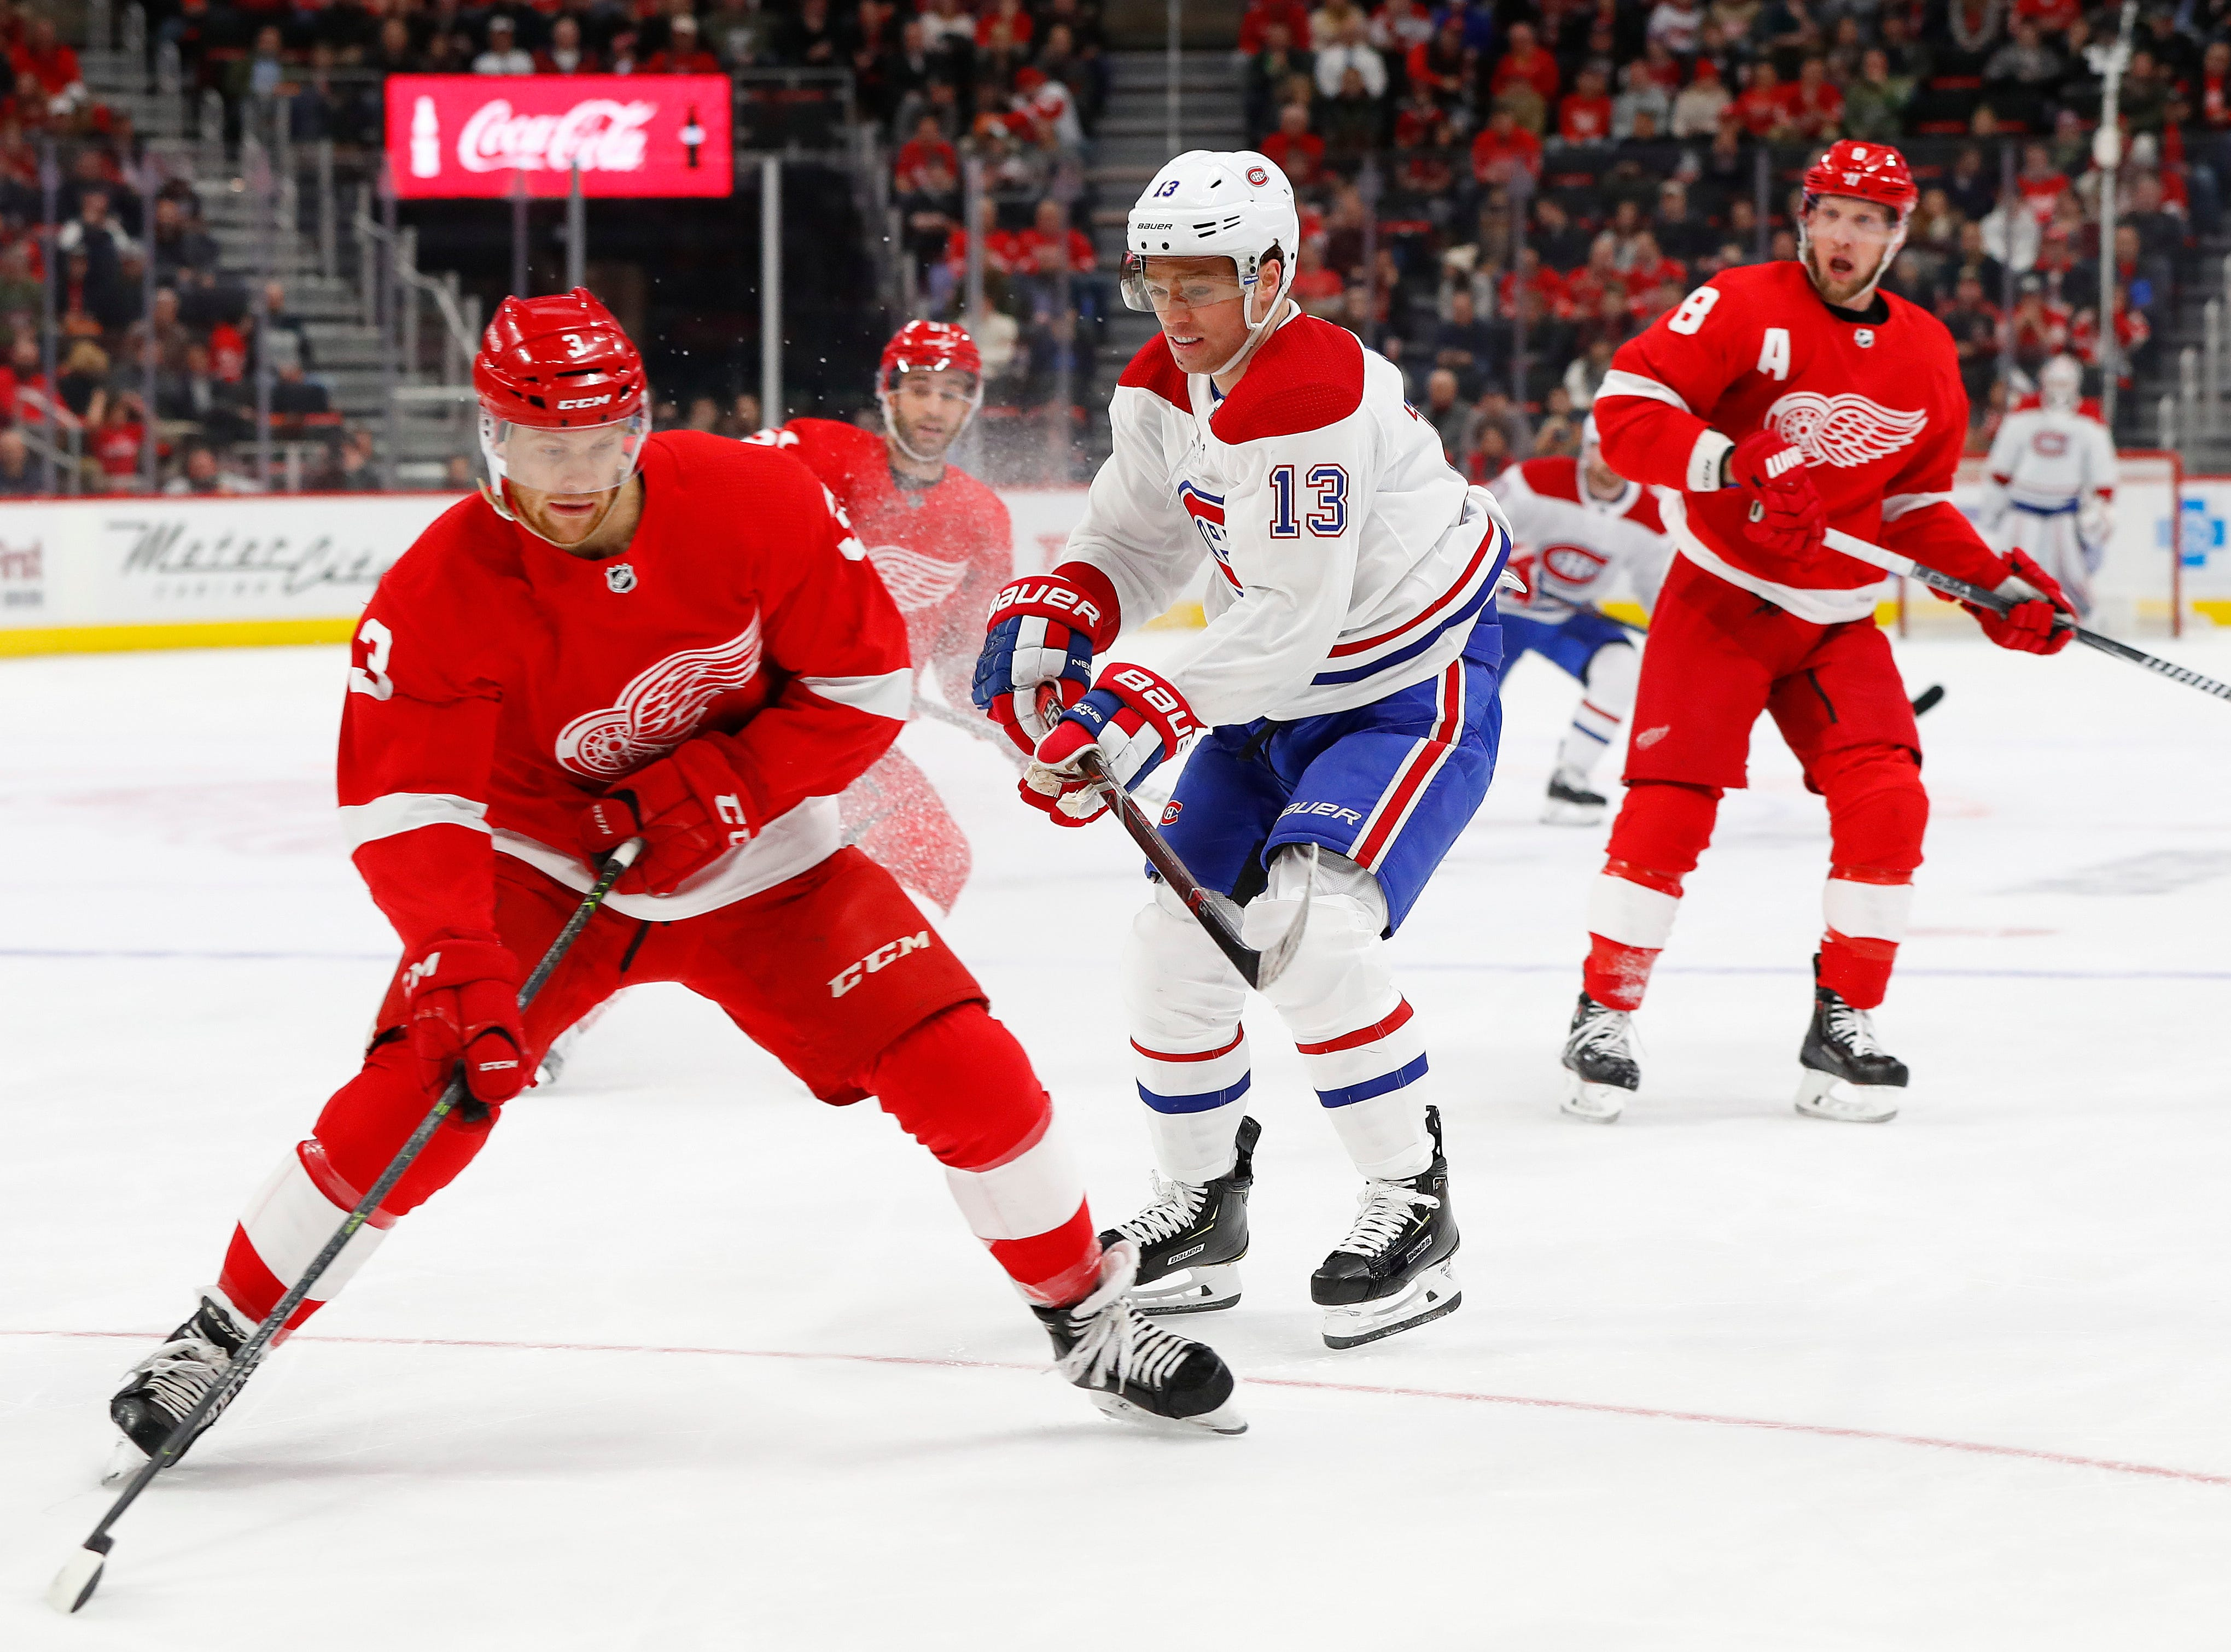 Detroit Red Wings defenseman Nick Jensen (3) protects the puck from Montreal Canadiens center Max Domi (13) in the first period.